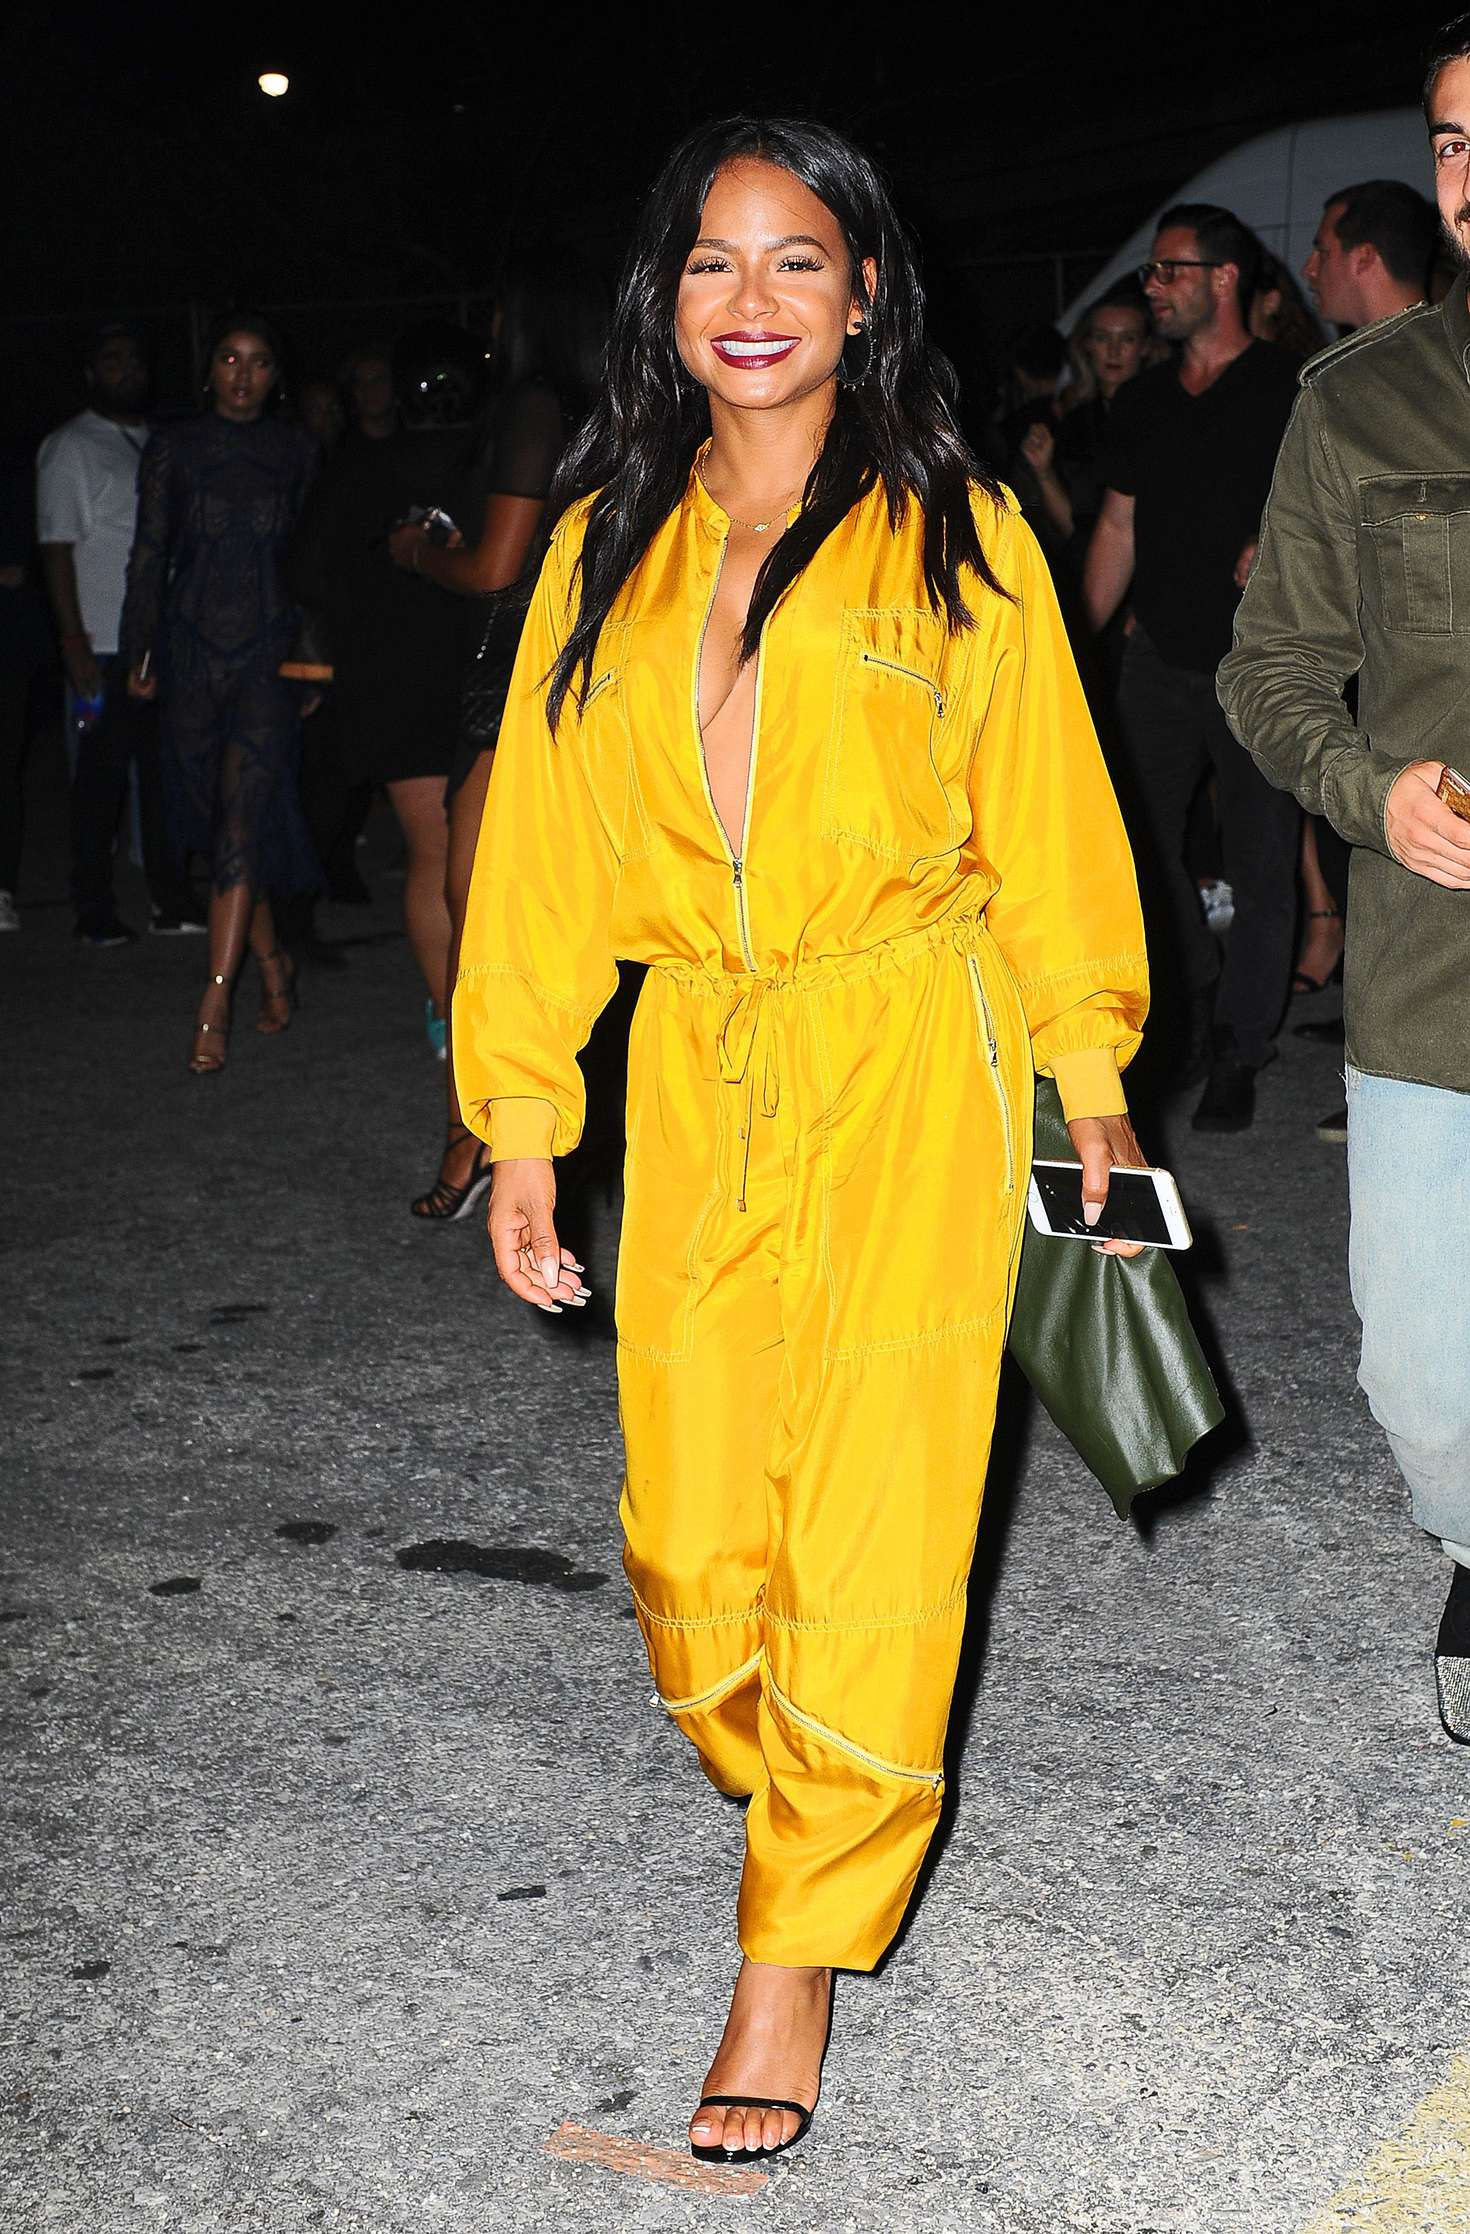 Karrueche Tran 2016 : Karrueche Tran and Christina Milian at Alexander Wang x Adidas Party -03